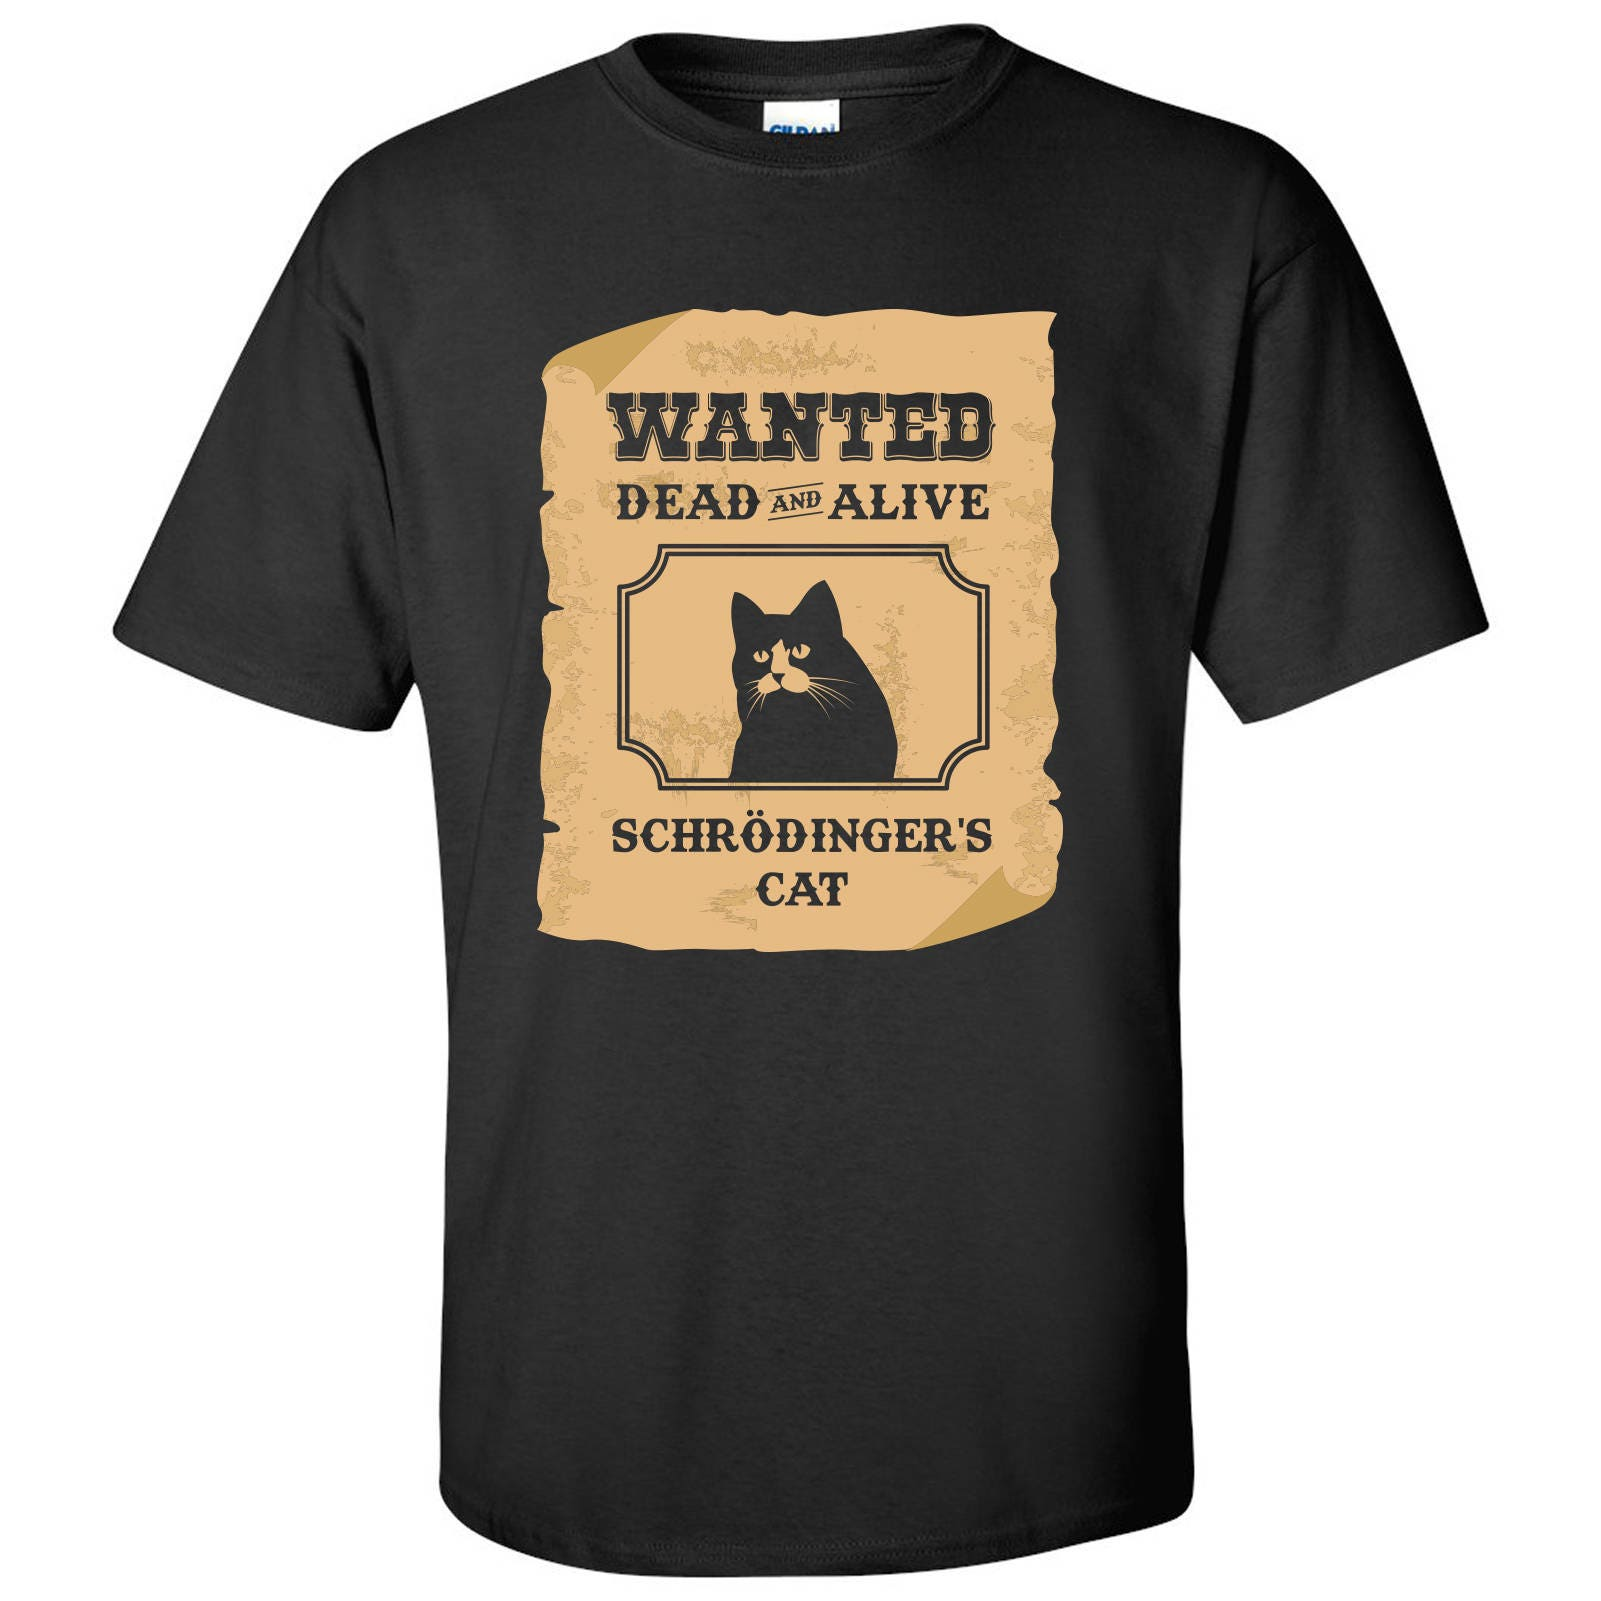 cce18580b Wanted Dead and Alive Schrodinger's Cat T Shirt | Etsy